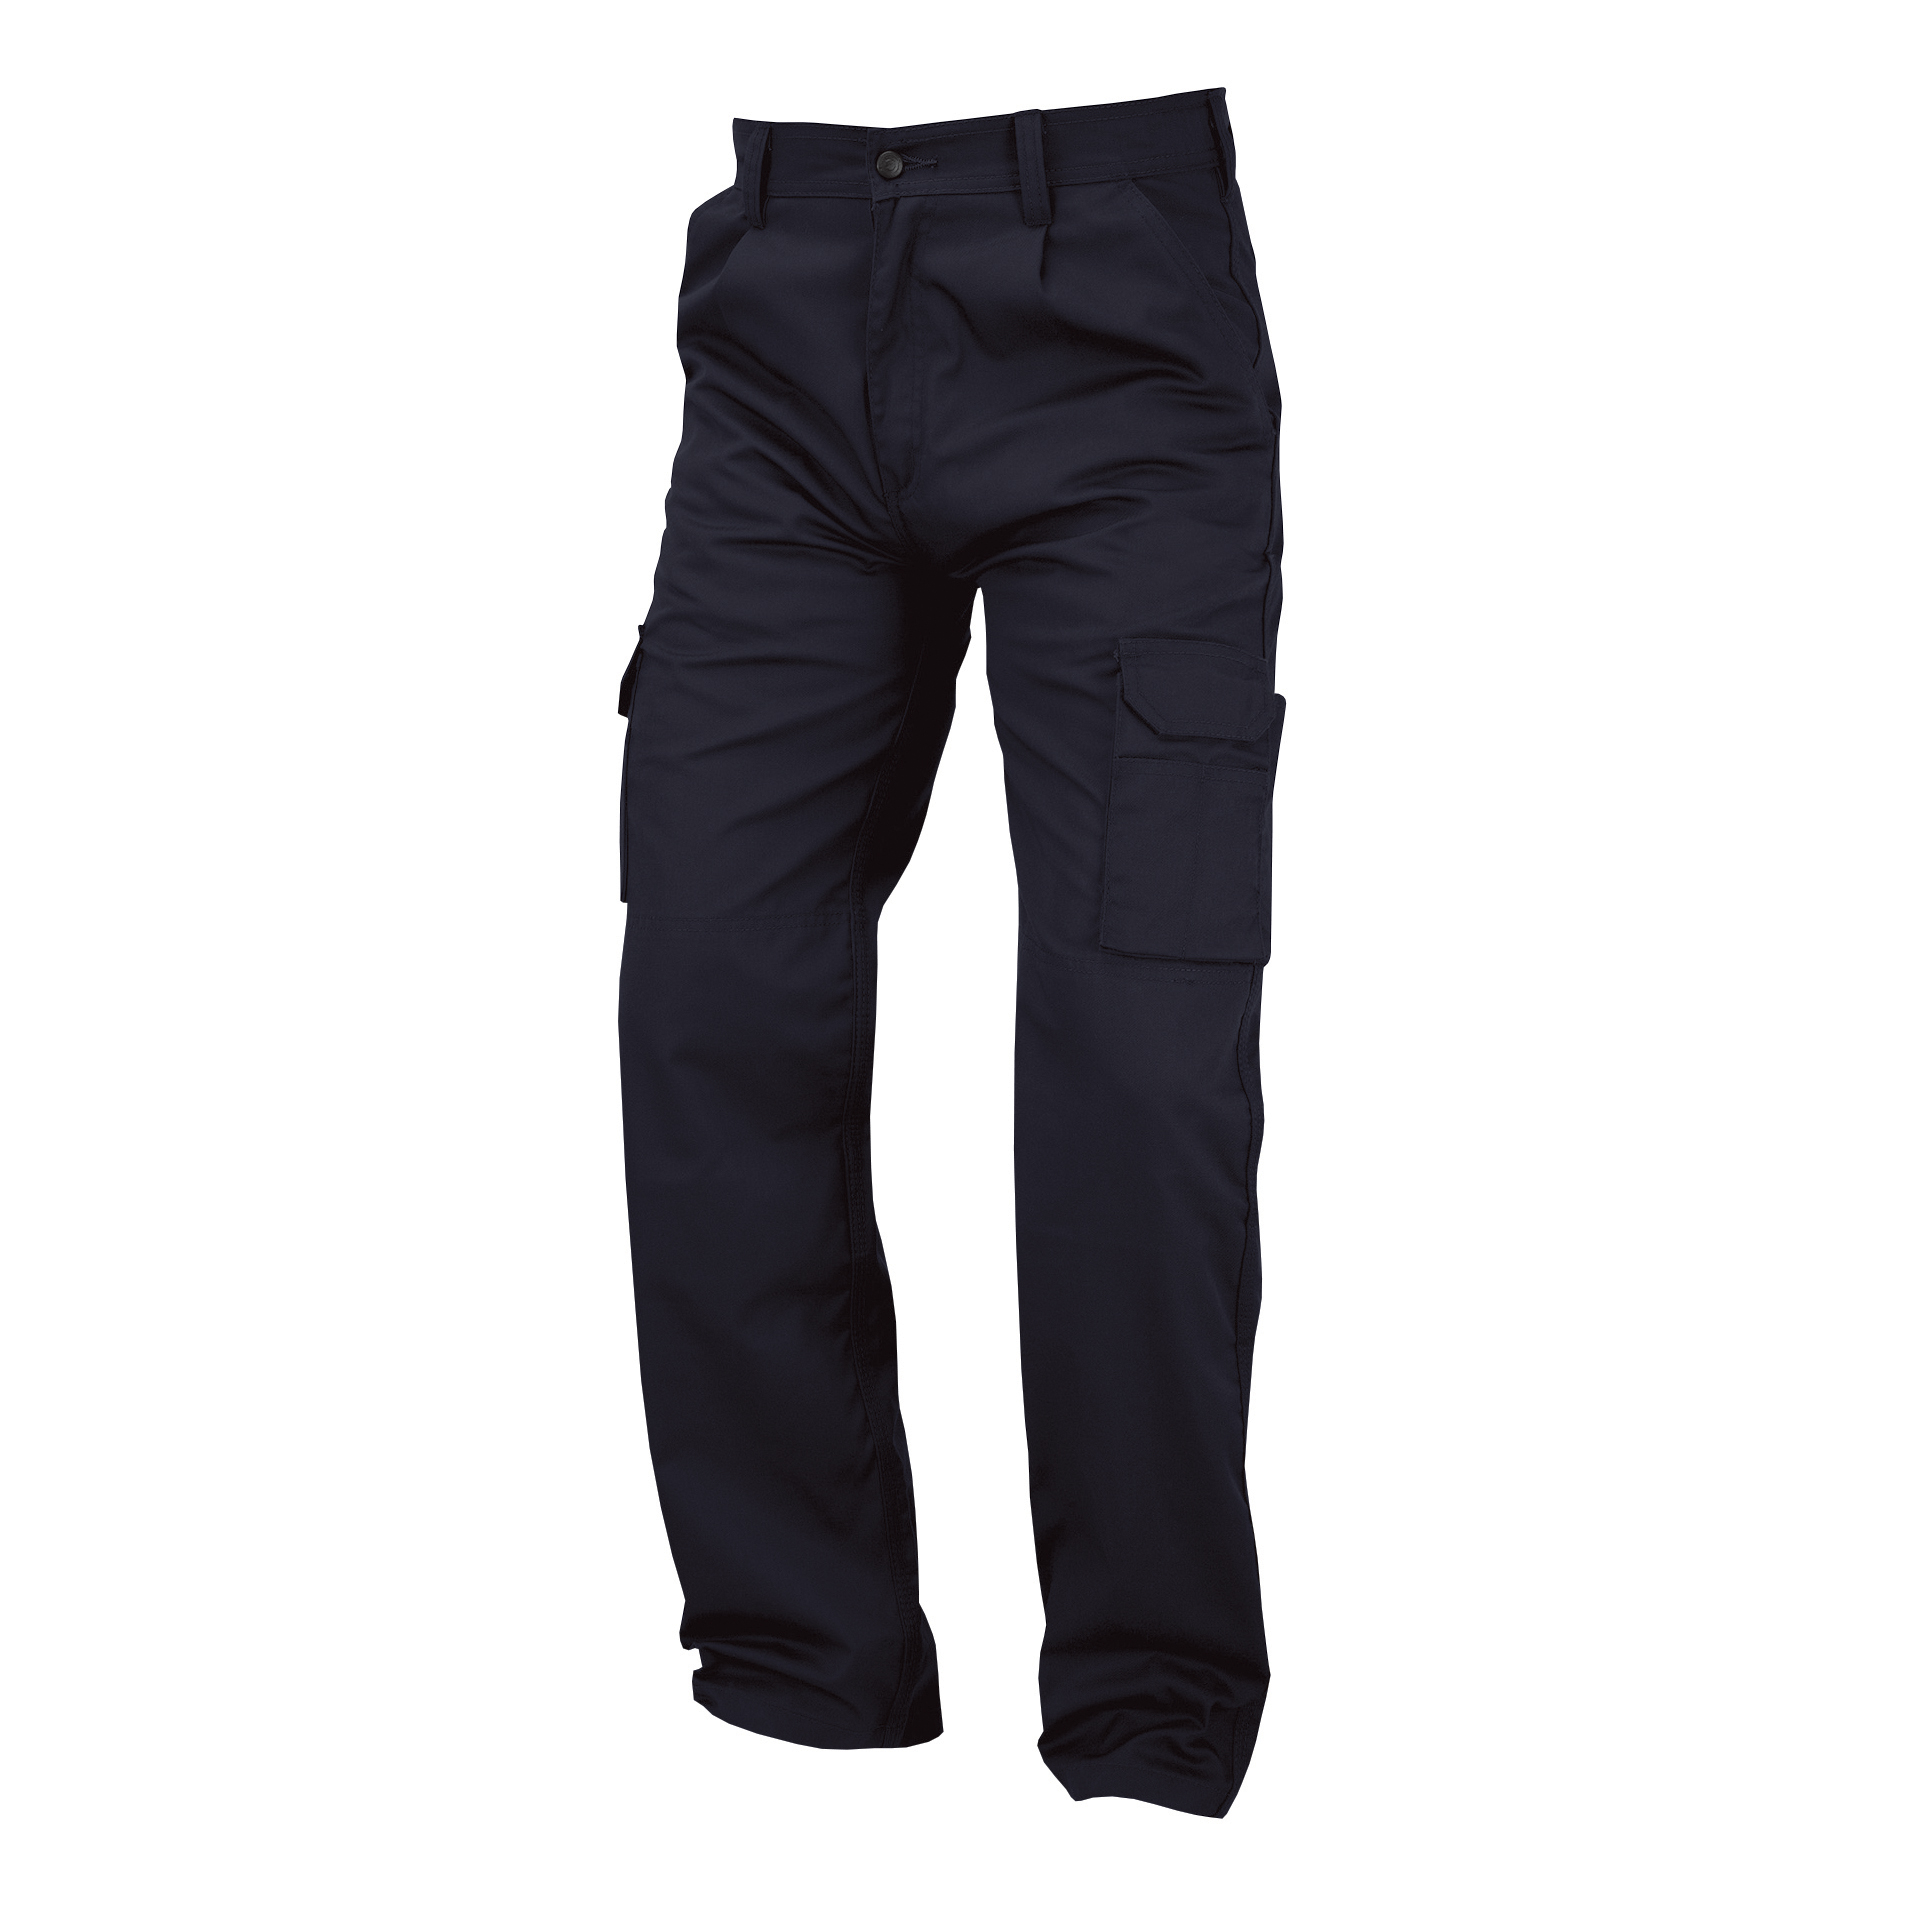 Combat / Cargo Combat Trousers Polycotton with Pockets 32in Long Navy Blue Ref PCTHWN32T *1-3 Days Lead Time*